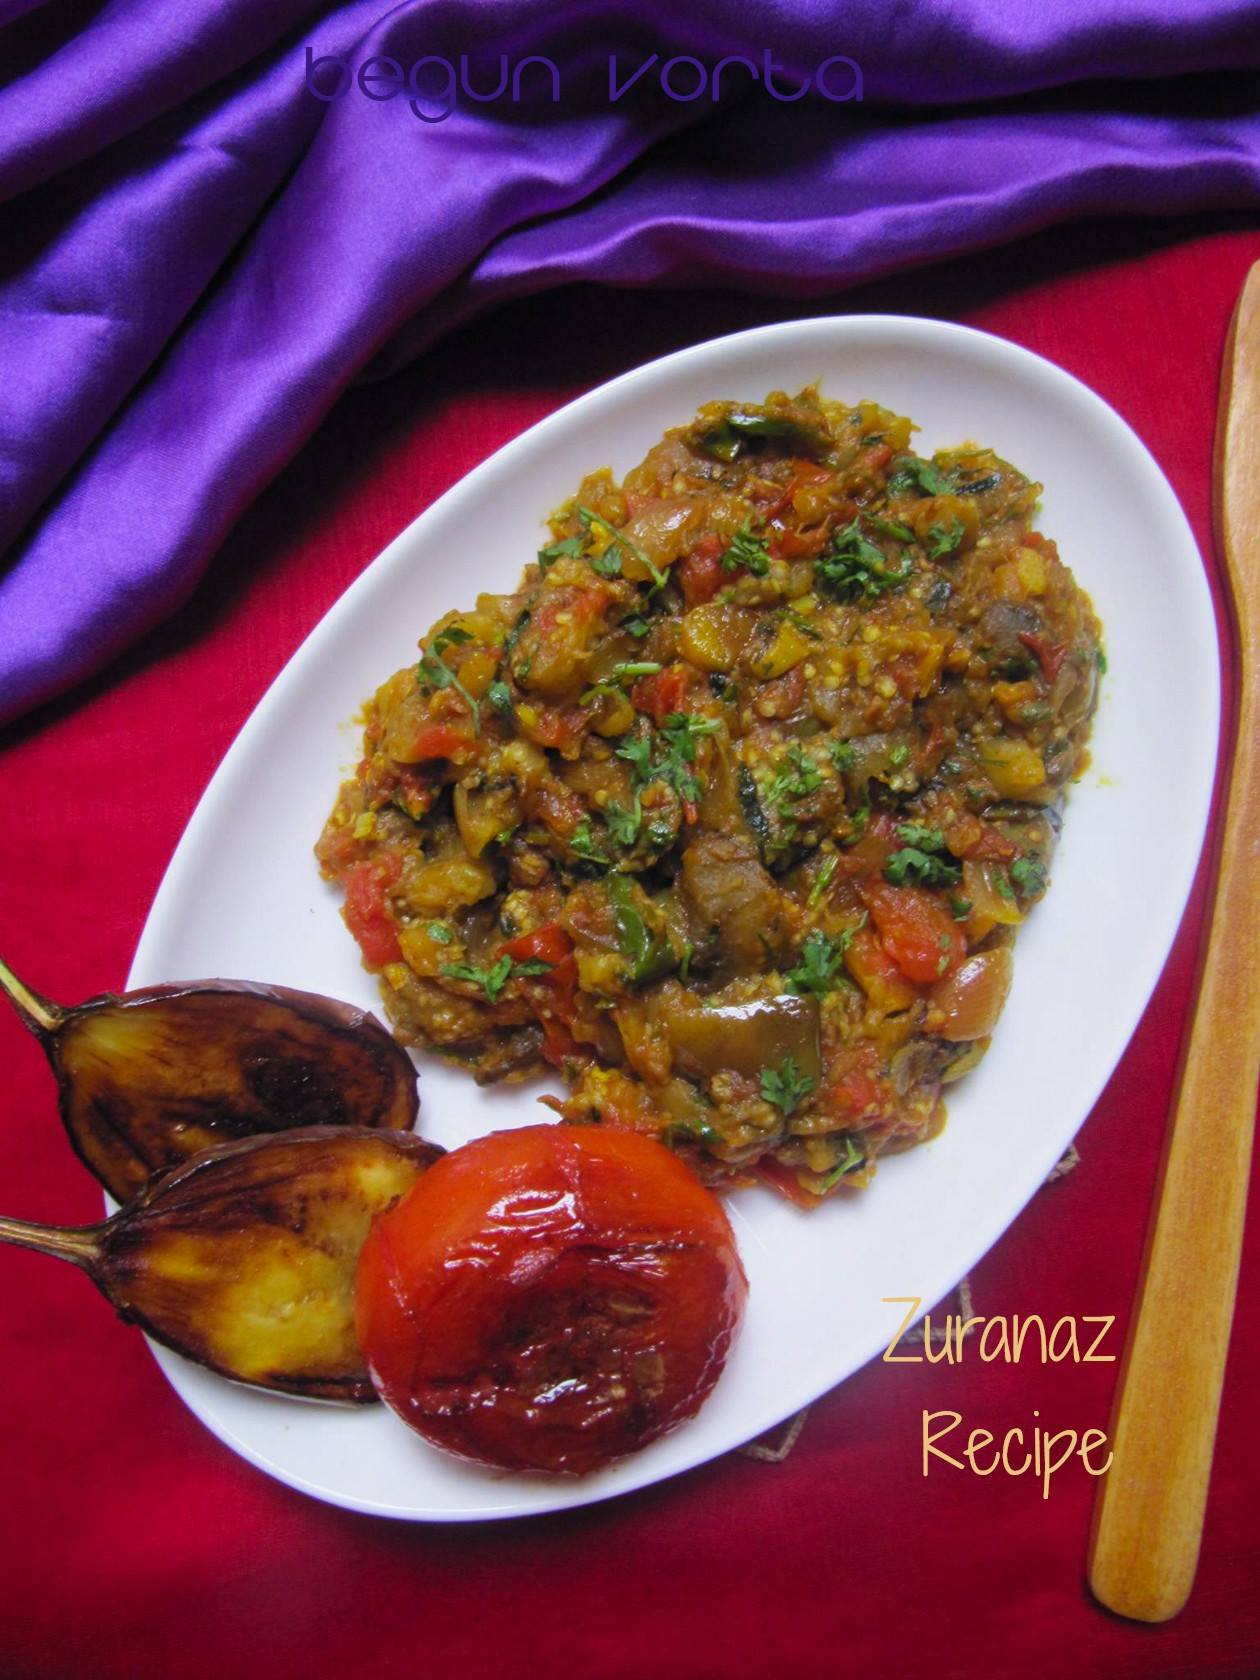 Begun Bhorta/Spicy Begun Bhorta/Spicy Mashed Eggplant/Brinjal Bhorta